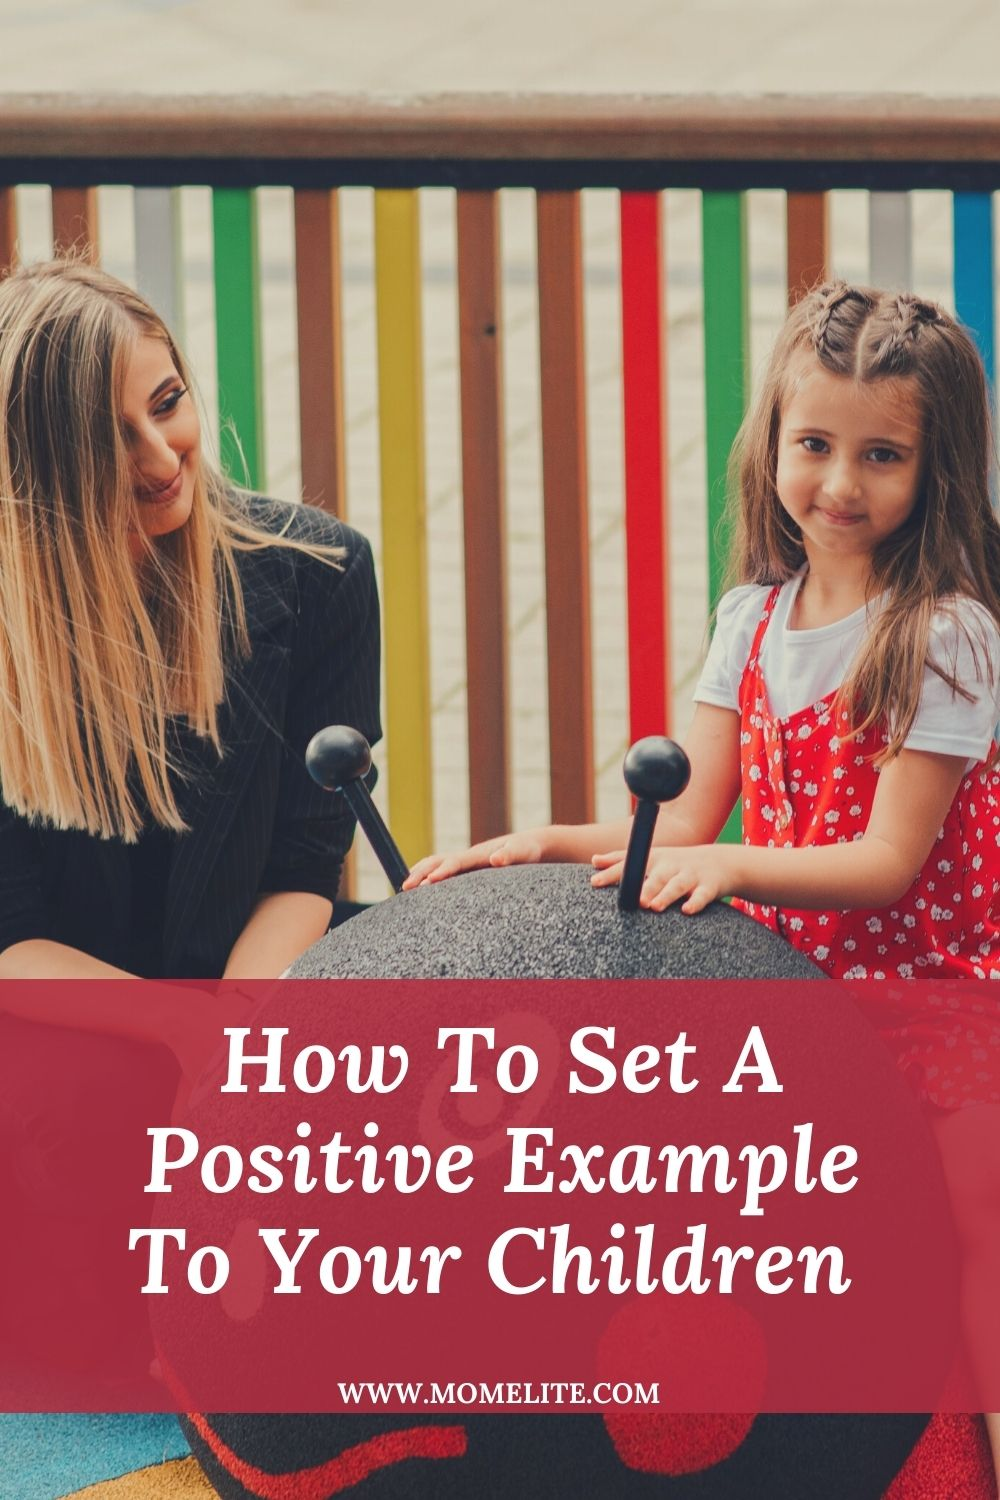 How To Set A Positive Example To Your Children